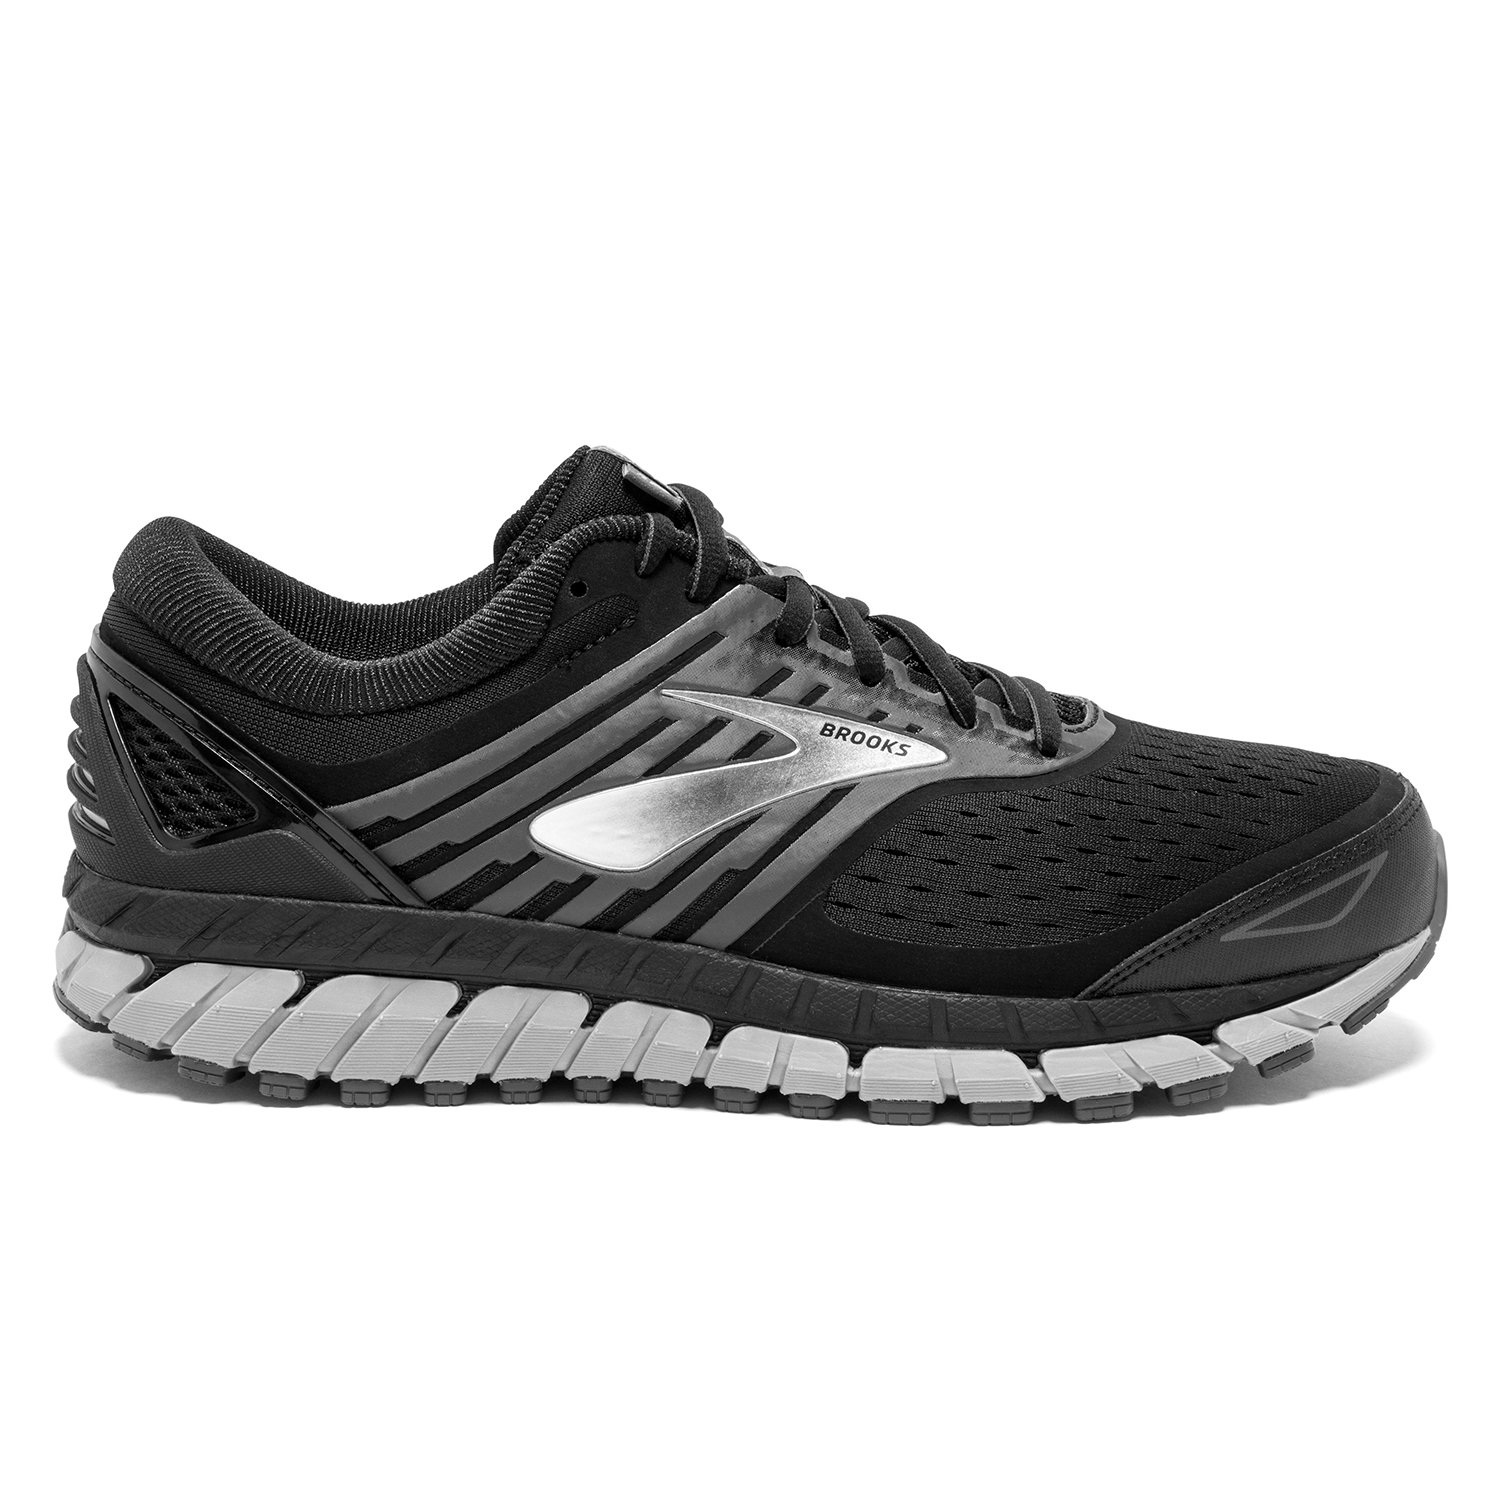 9978309674c9c Men s Brooks Beast 18 - John Buckley Sports